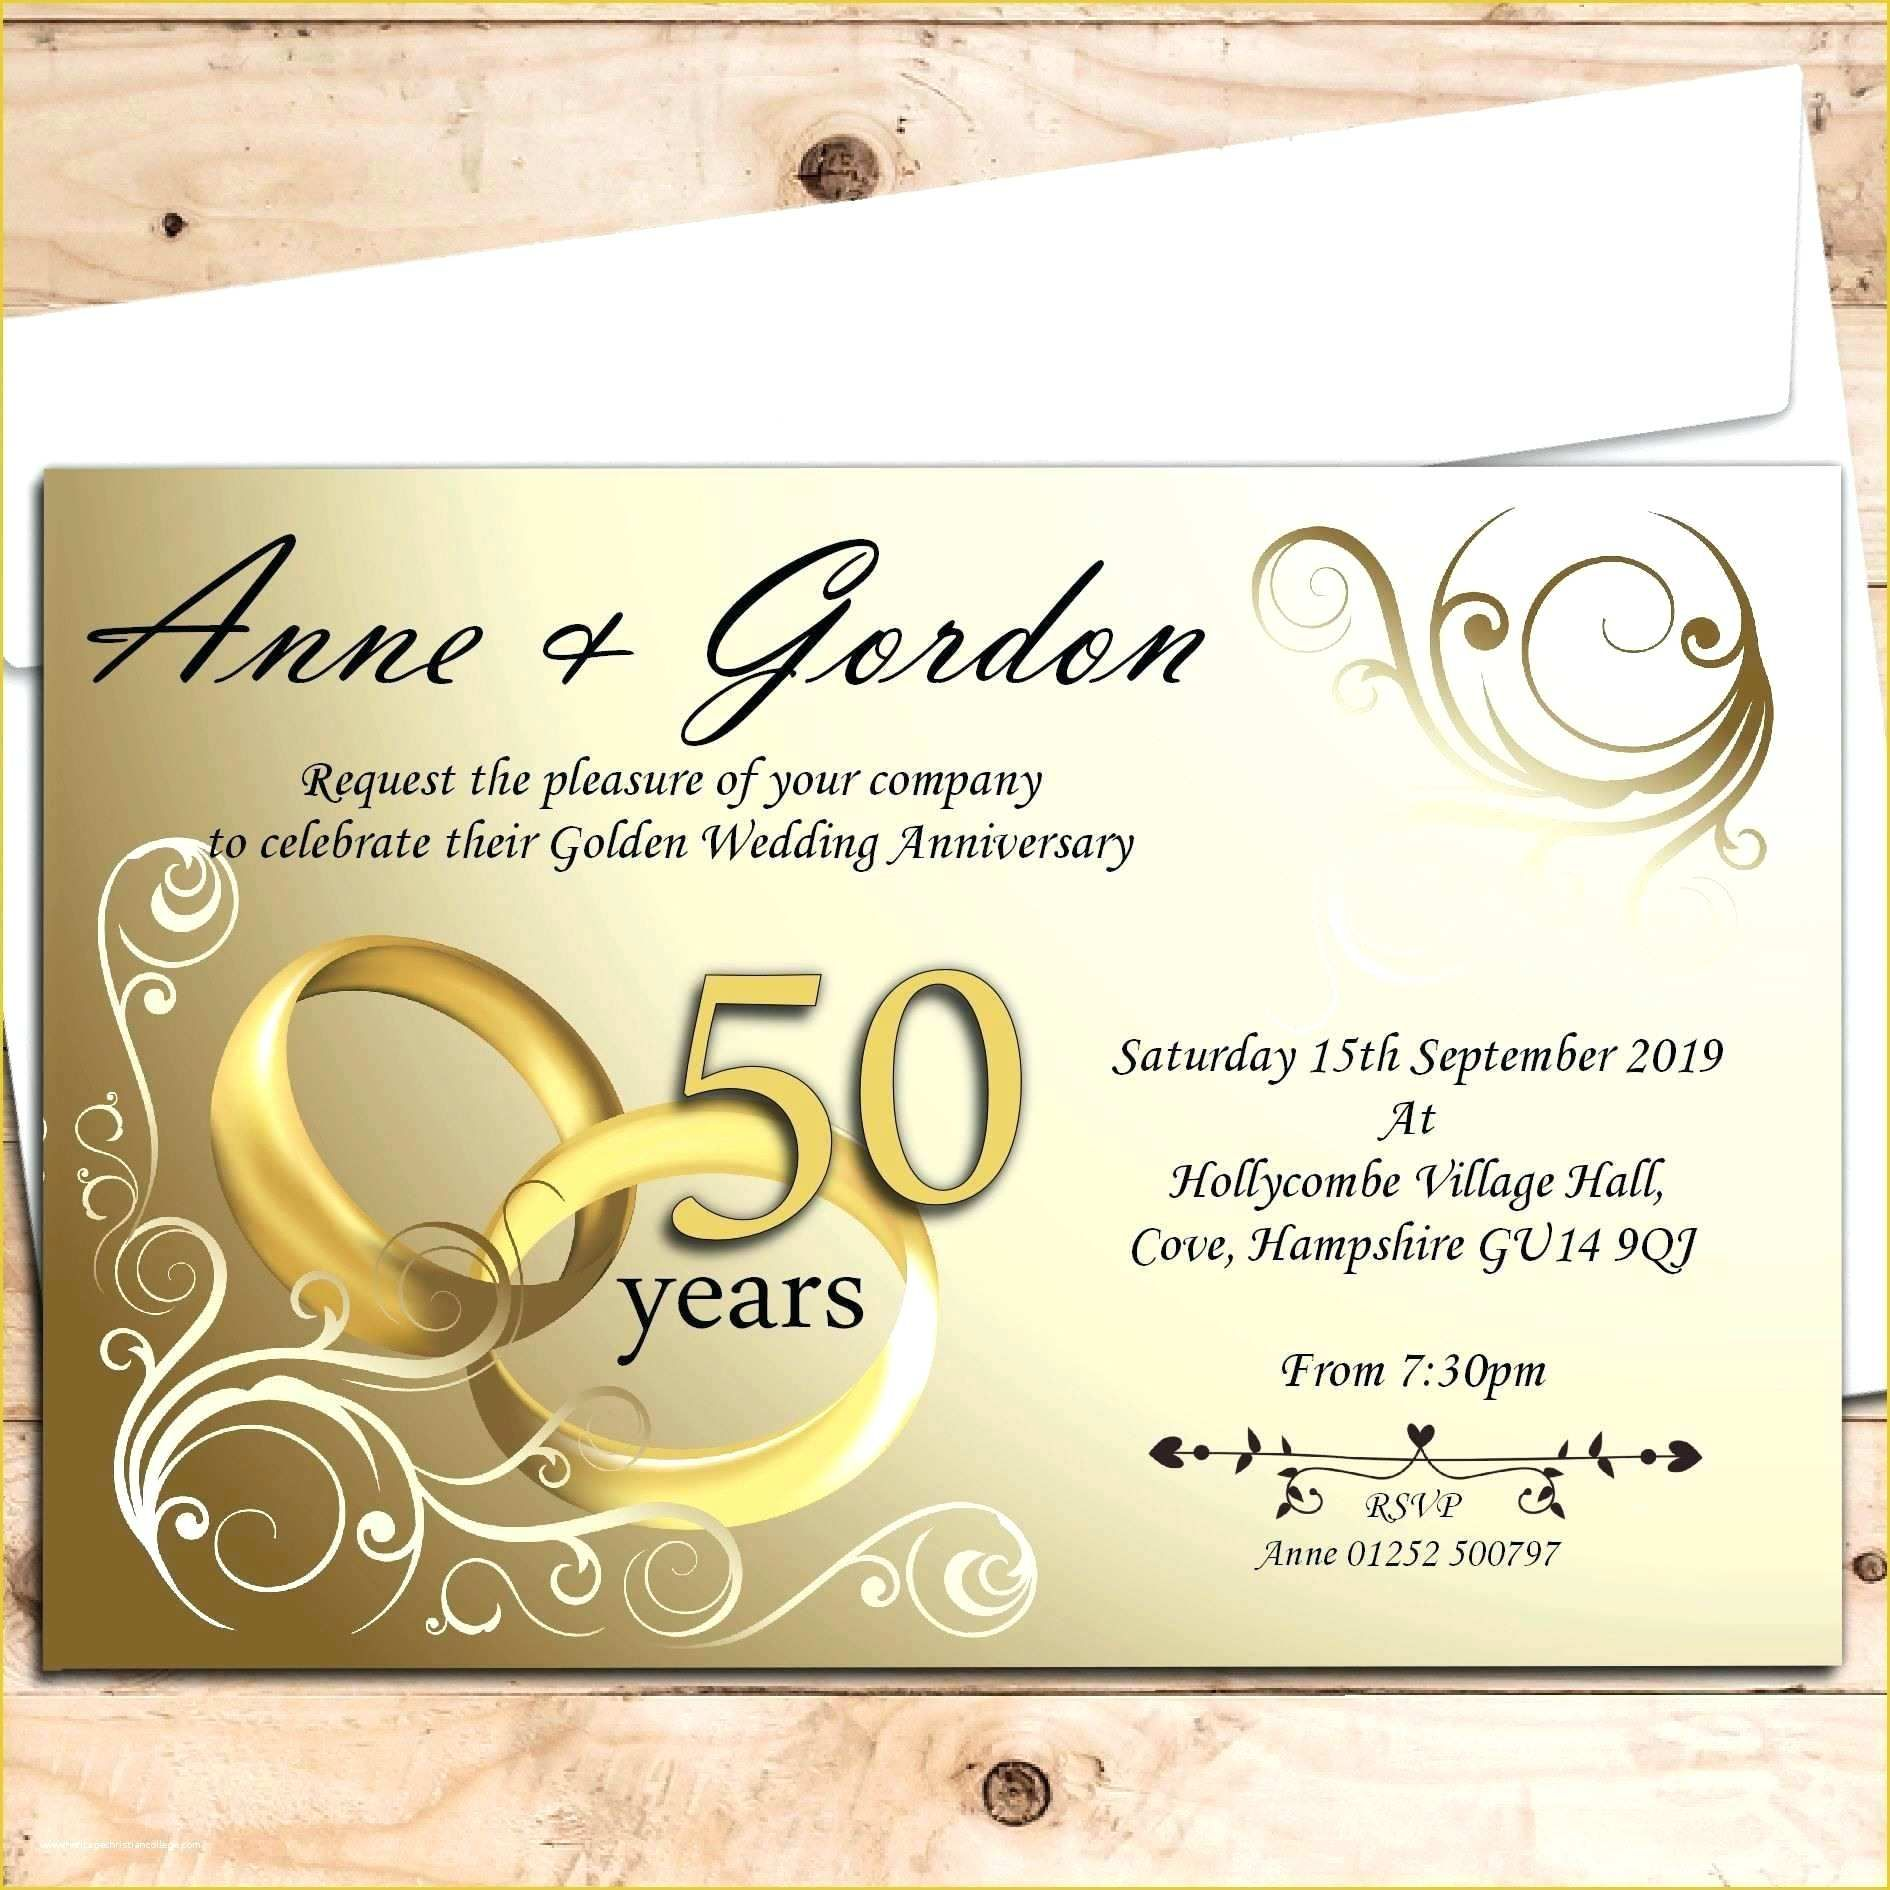 The Astonishing 017 Business Event Invitation Template Word Free Ideas 50th Wedding Anniversary Invitations Anniversary Invitations Business Events Invitation